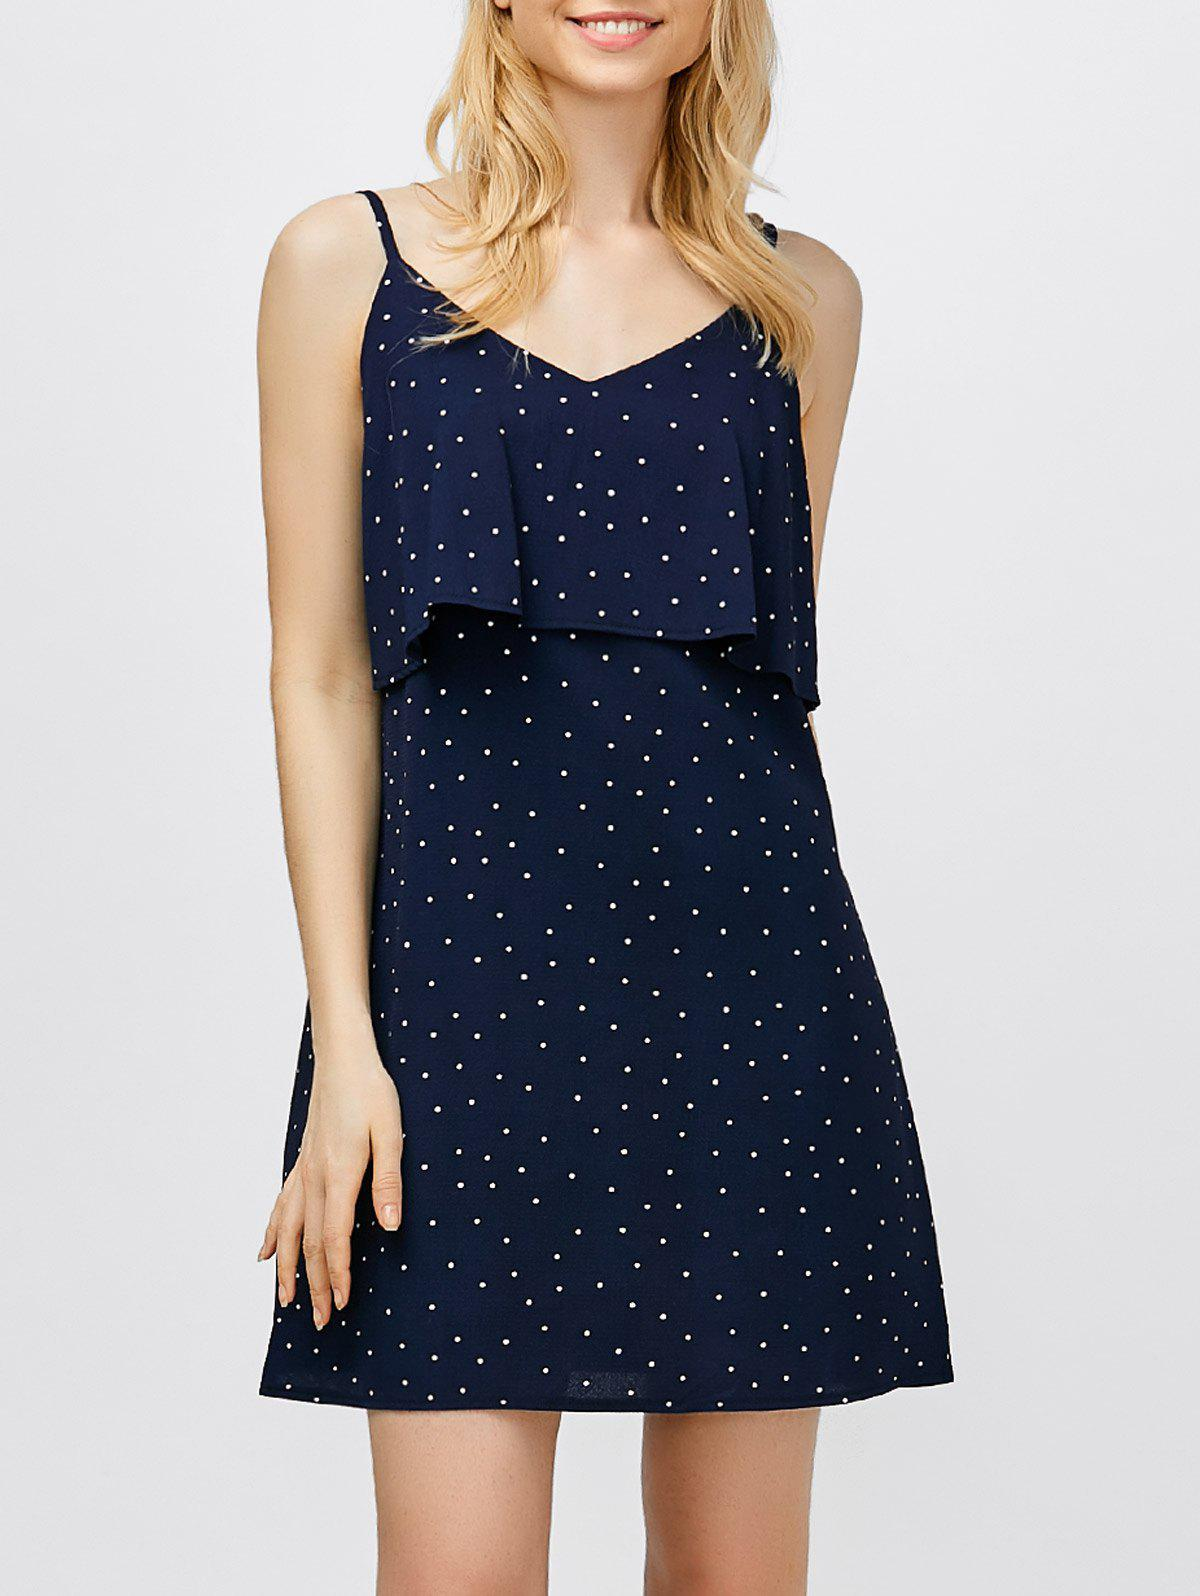 Ruffle Polka Dot Mini Slip Dress - DEEP BLUE S